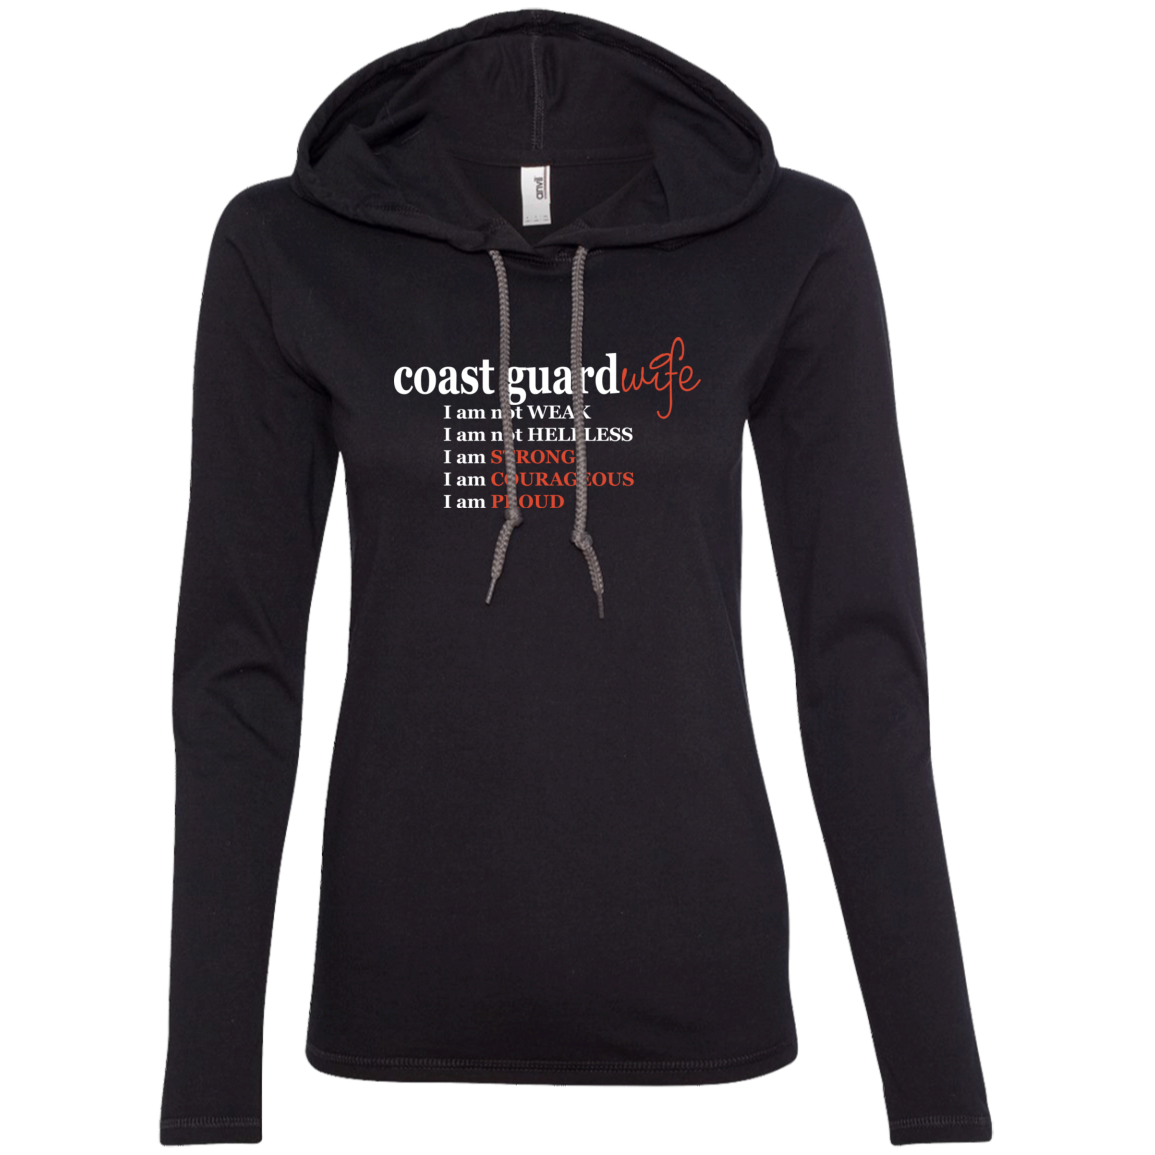 Coast Guard Wife Collection